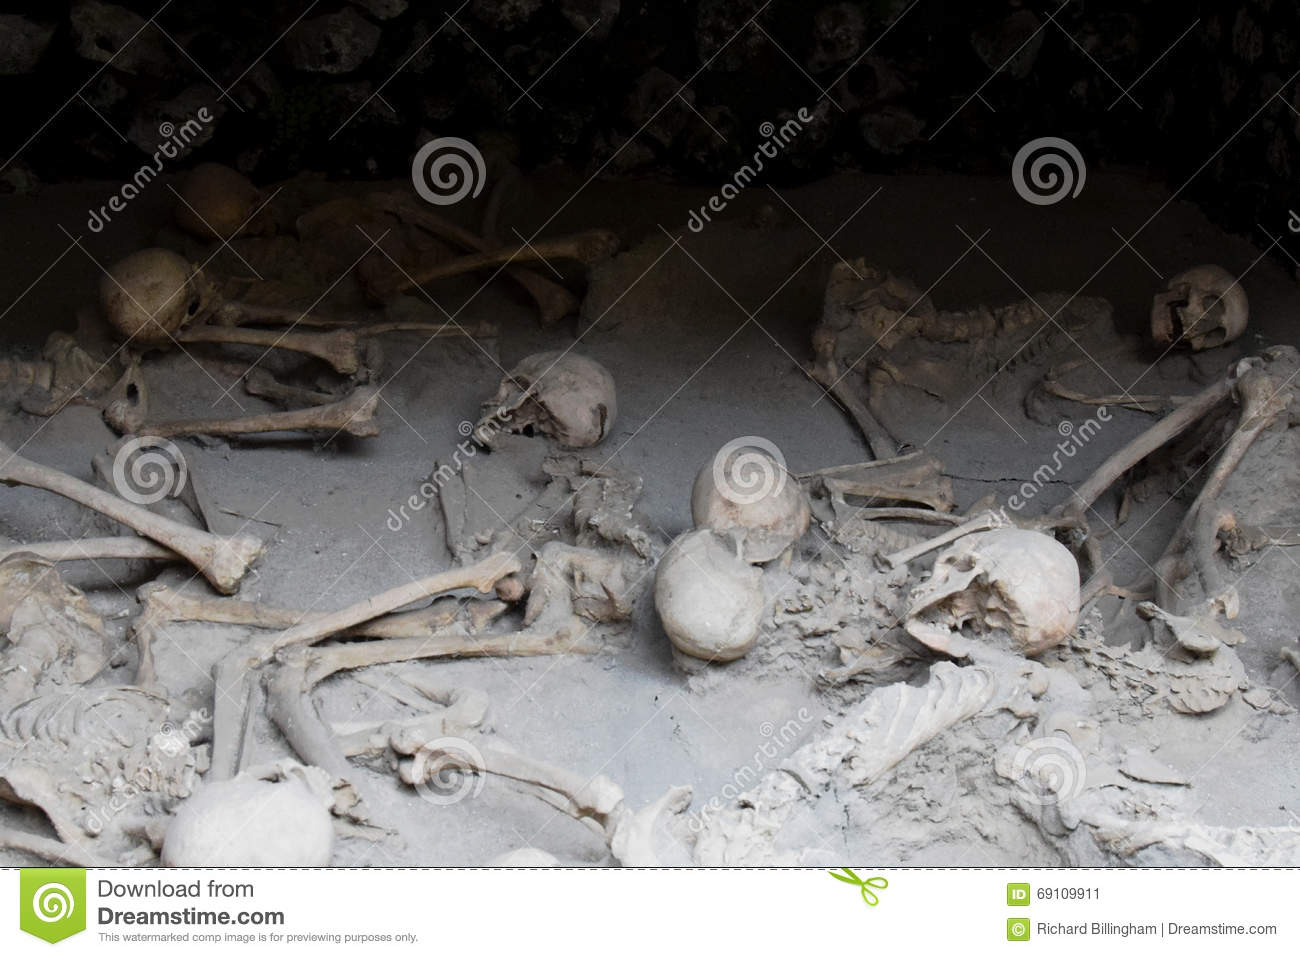 Skeletons in Boat Sheds, Herculaneum Archaeological Site, Campania, Italy